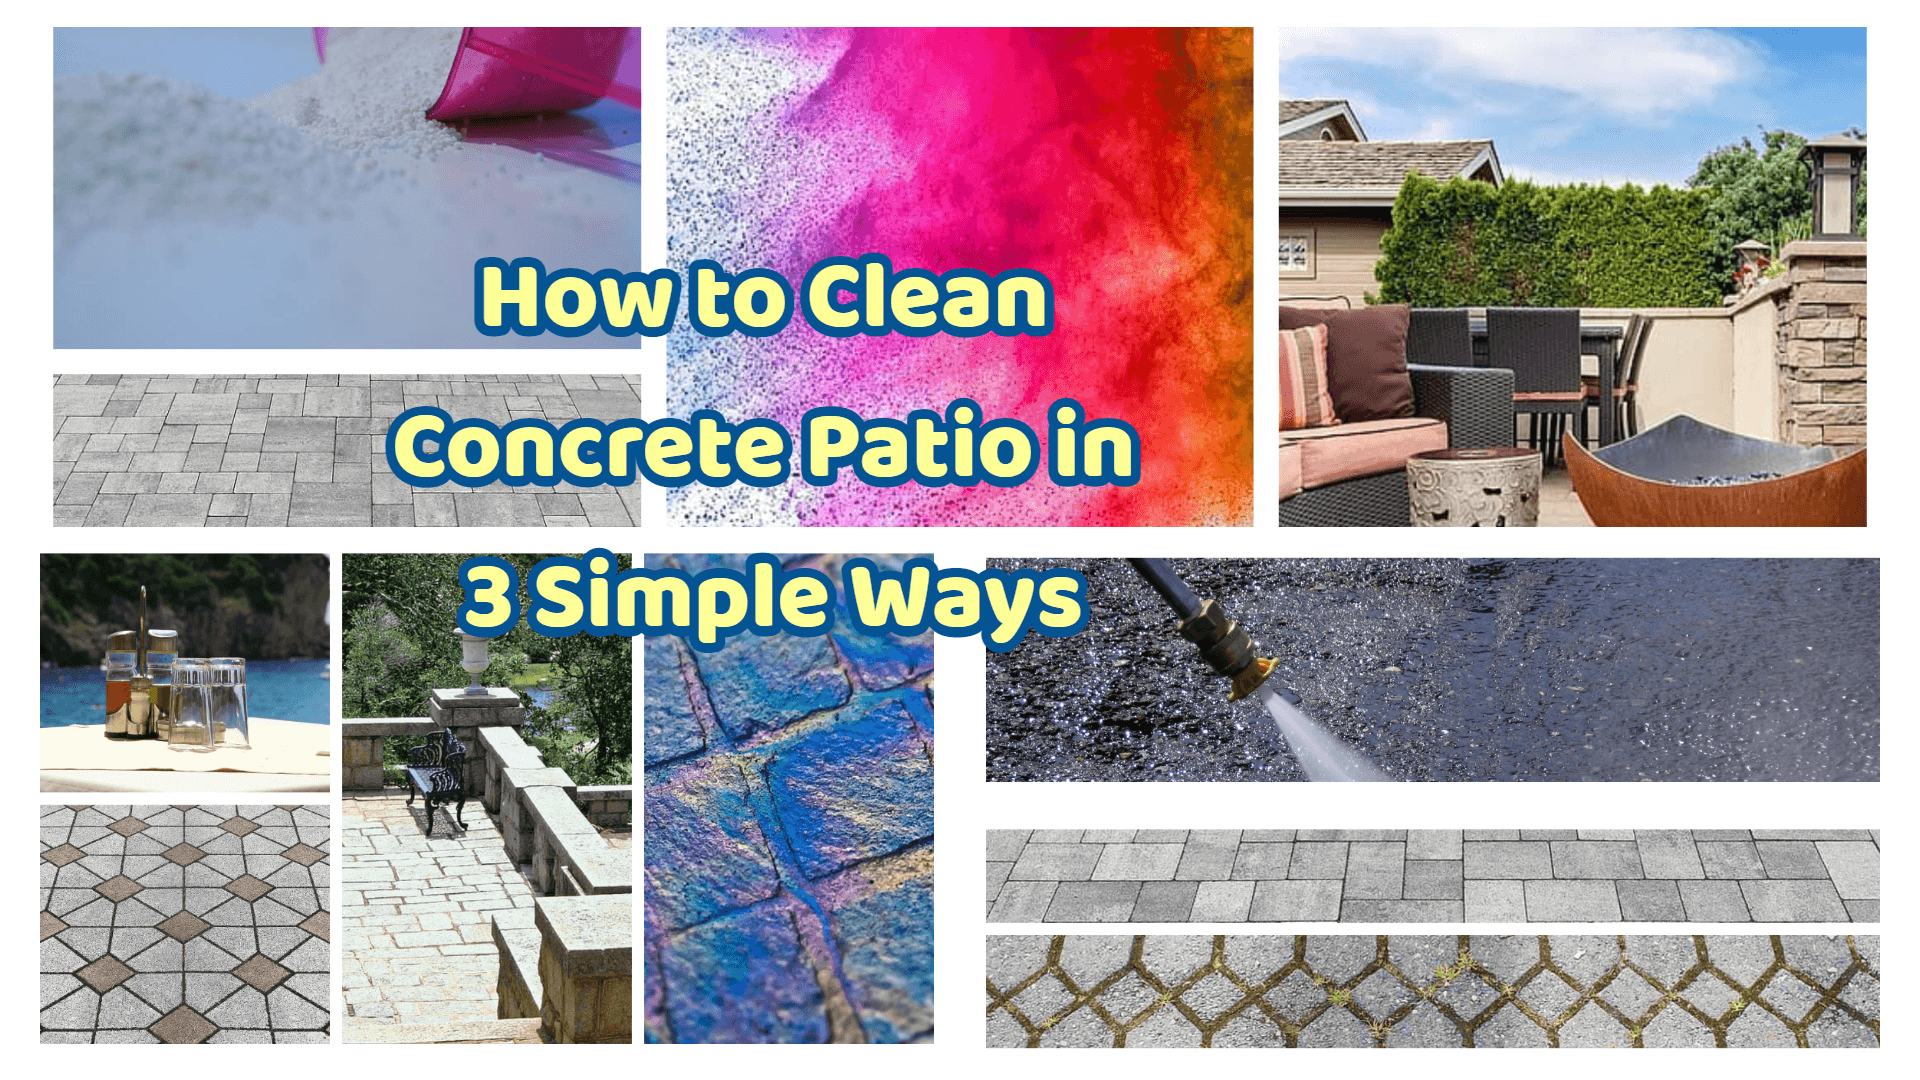 How to Clean Concrete Patio in 3 Simple Ways